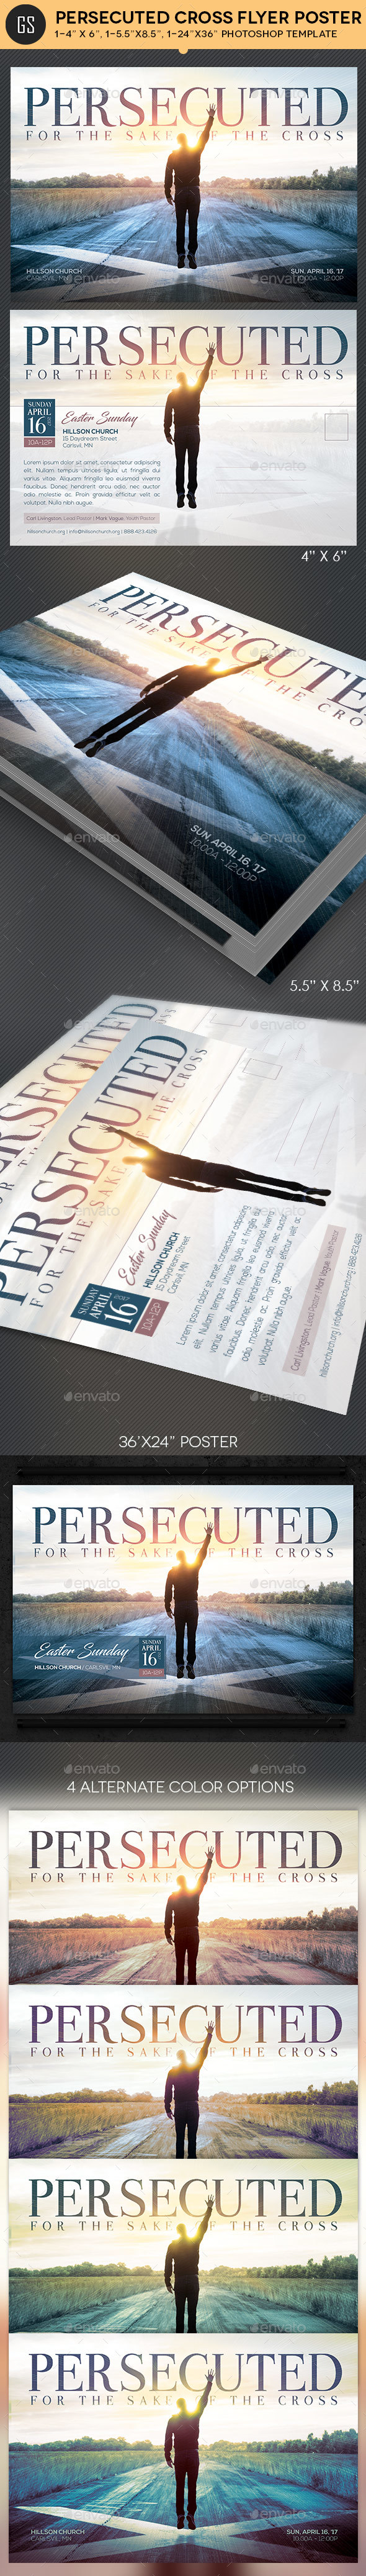 Persecuted Cross Flyer Poster Template - Church Flyers